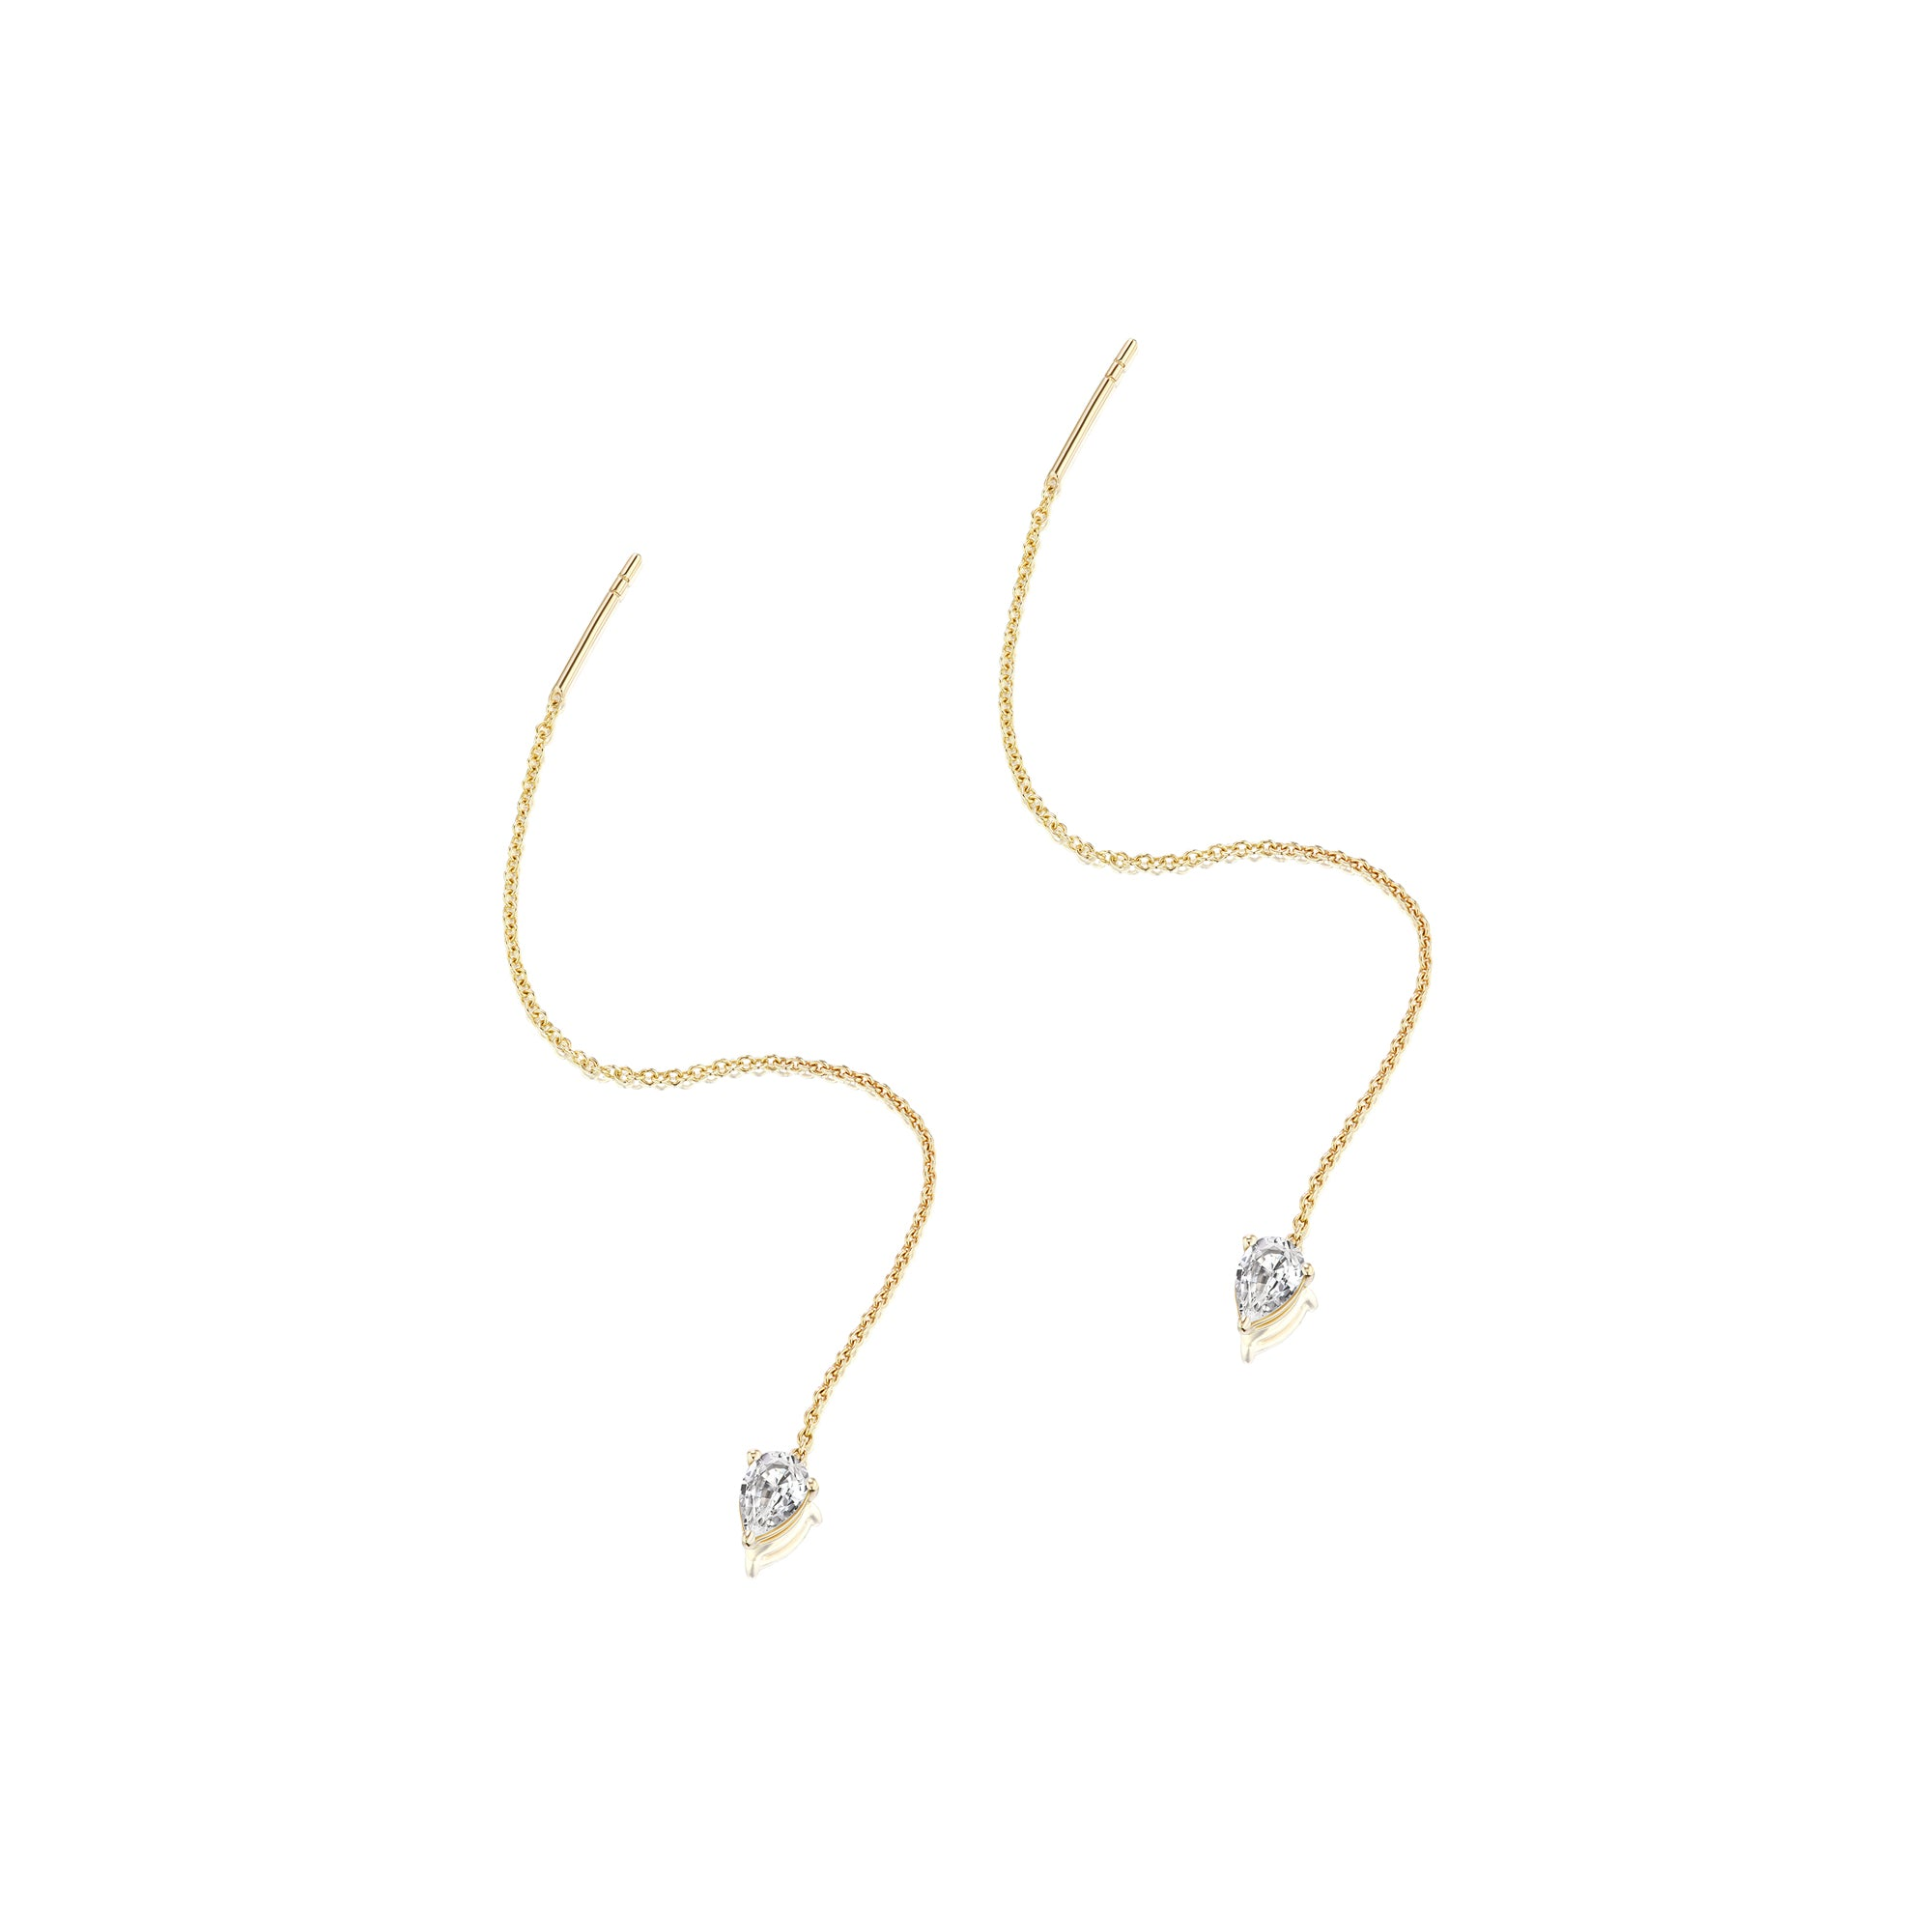 Altruist Pirum Threader - White Sapphire & Gold - Earrings - Broken English Jewelry